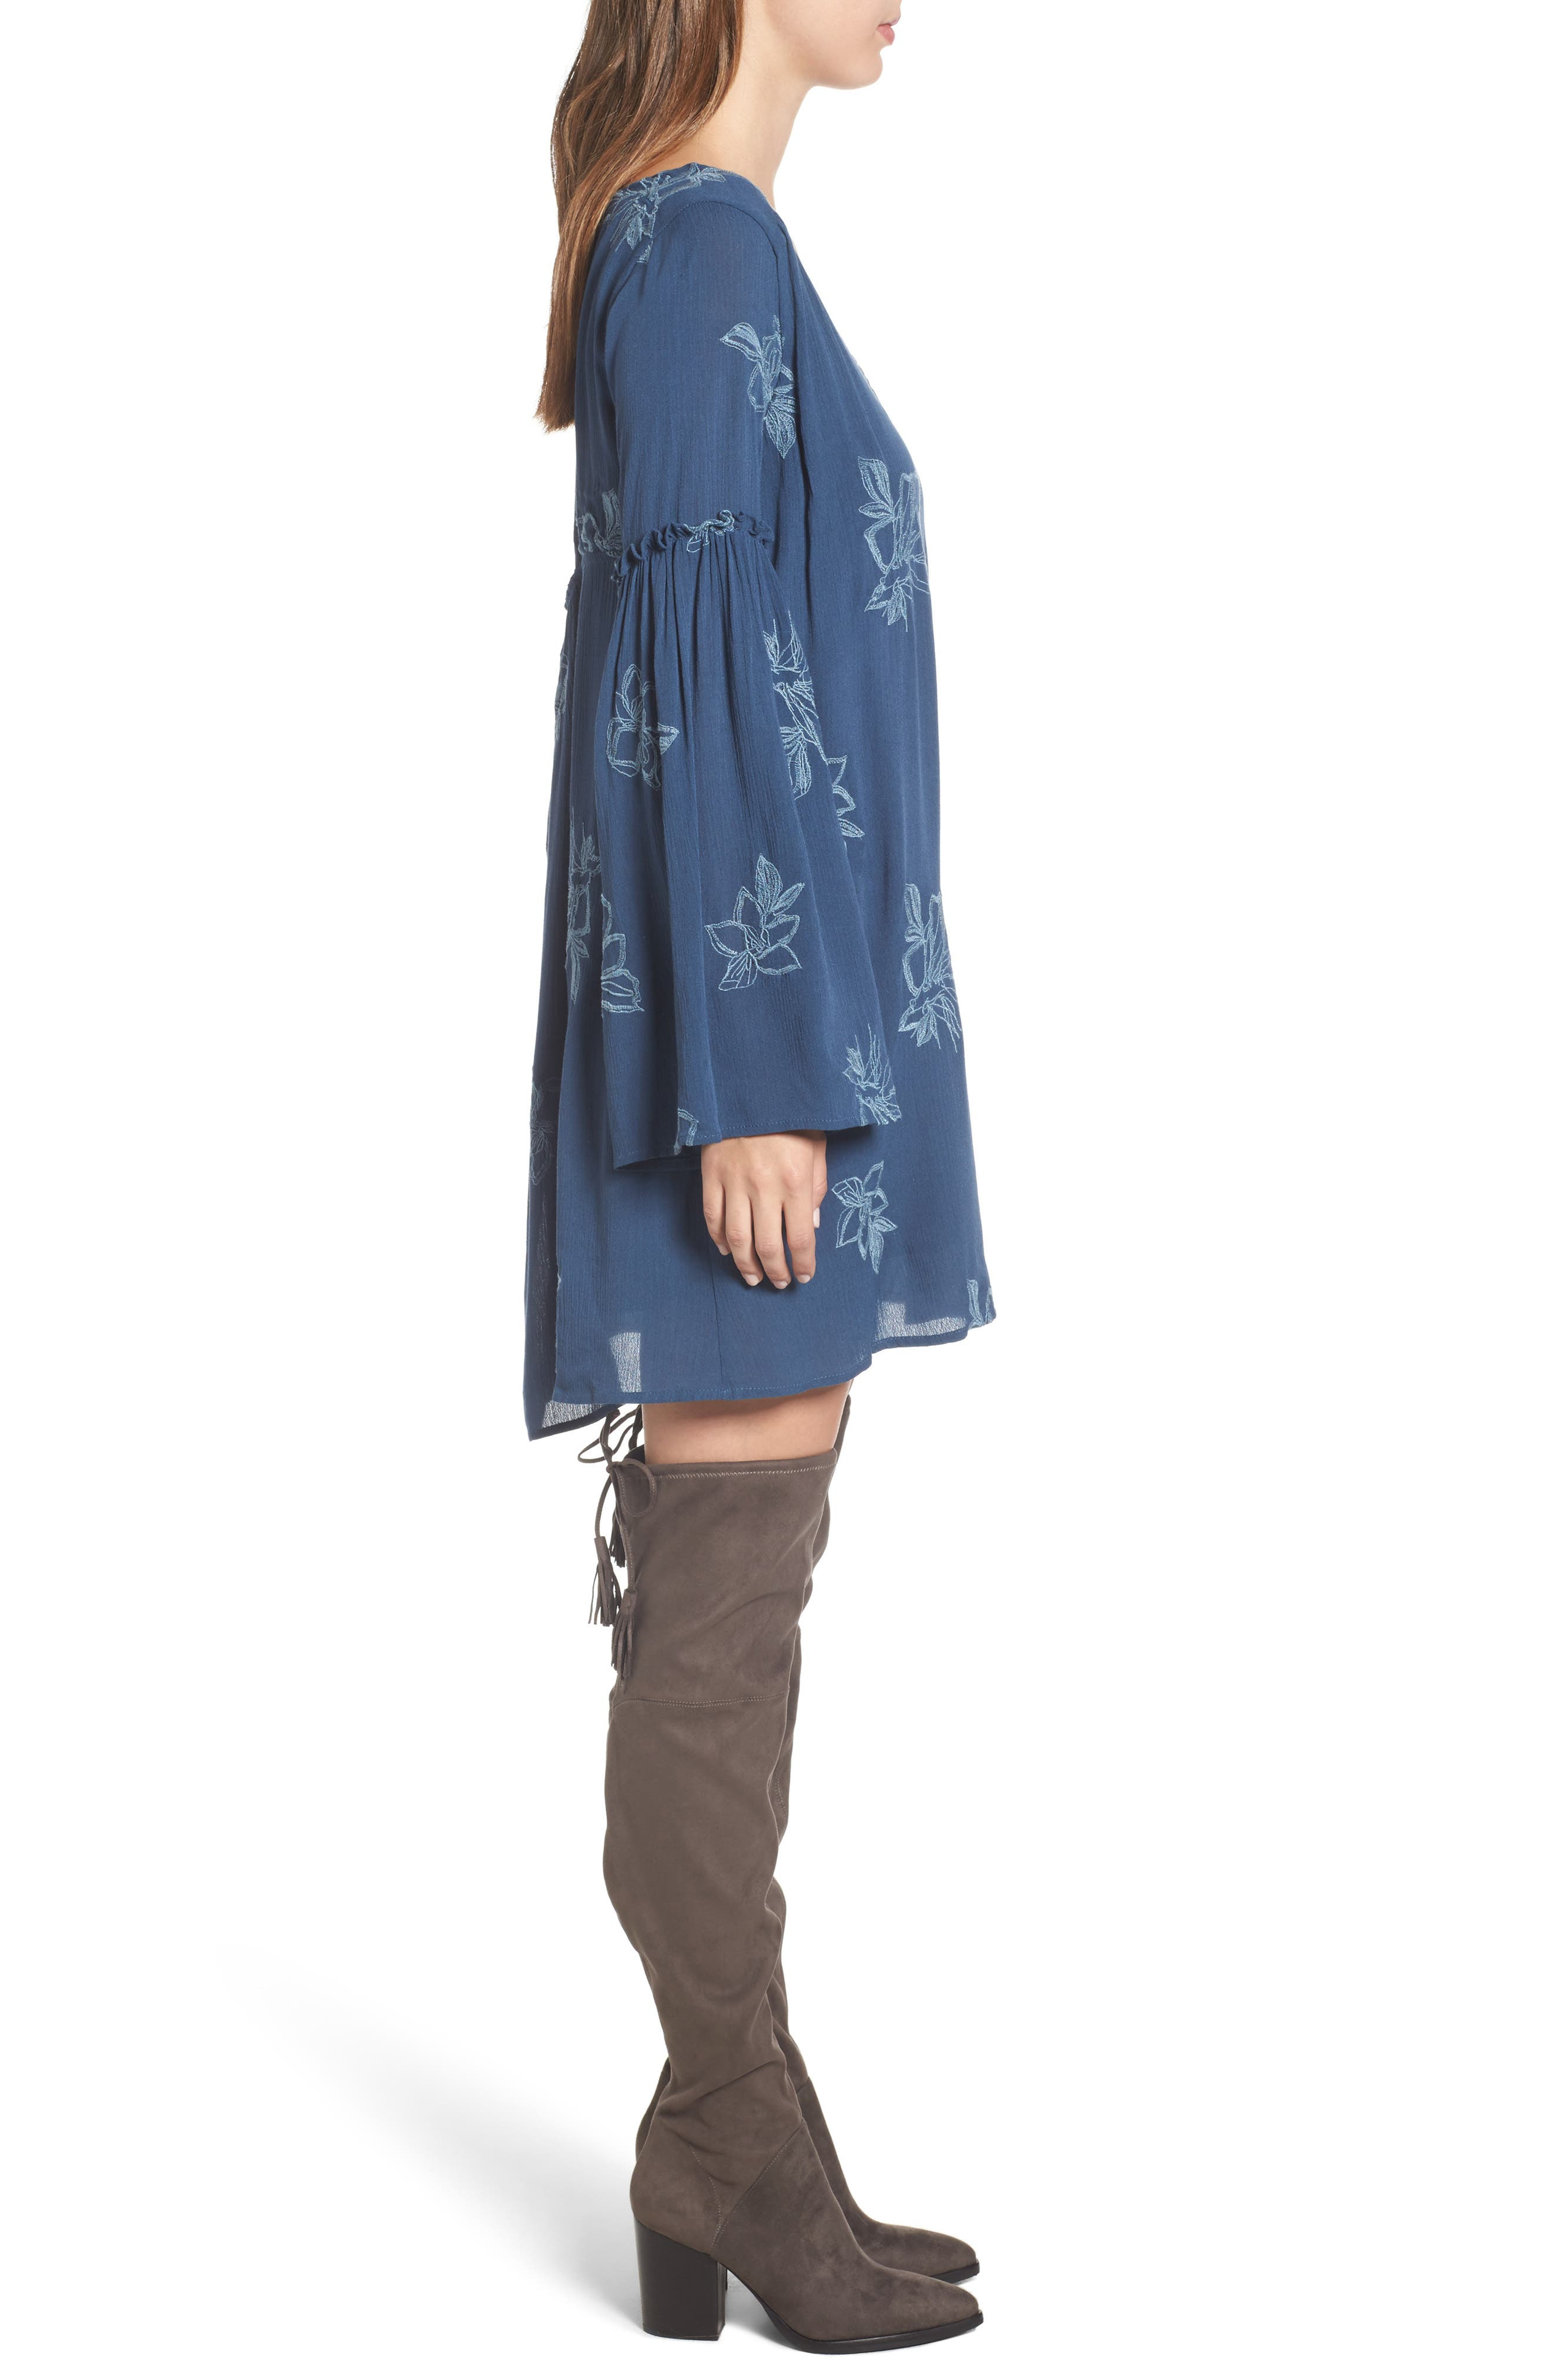 Autumn Embroidered Swing Dress,                             Alternate thumbnail 3, color,                             Blue